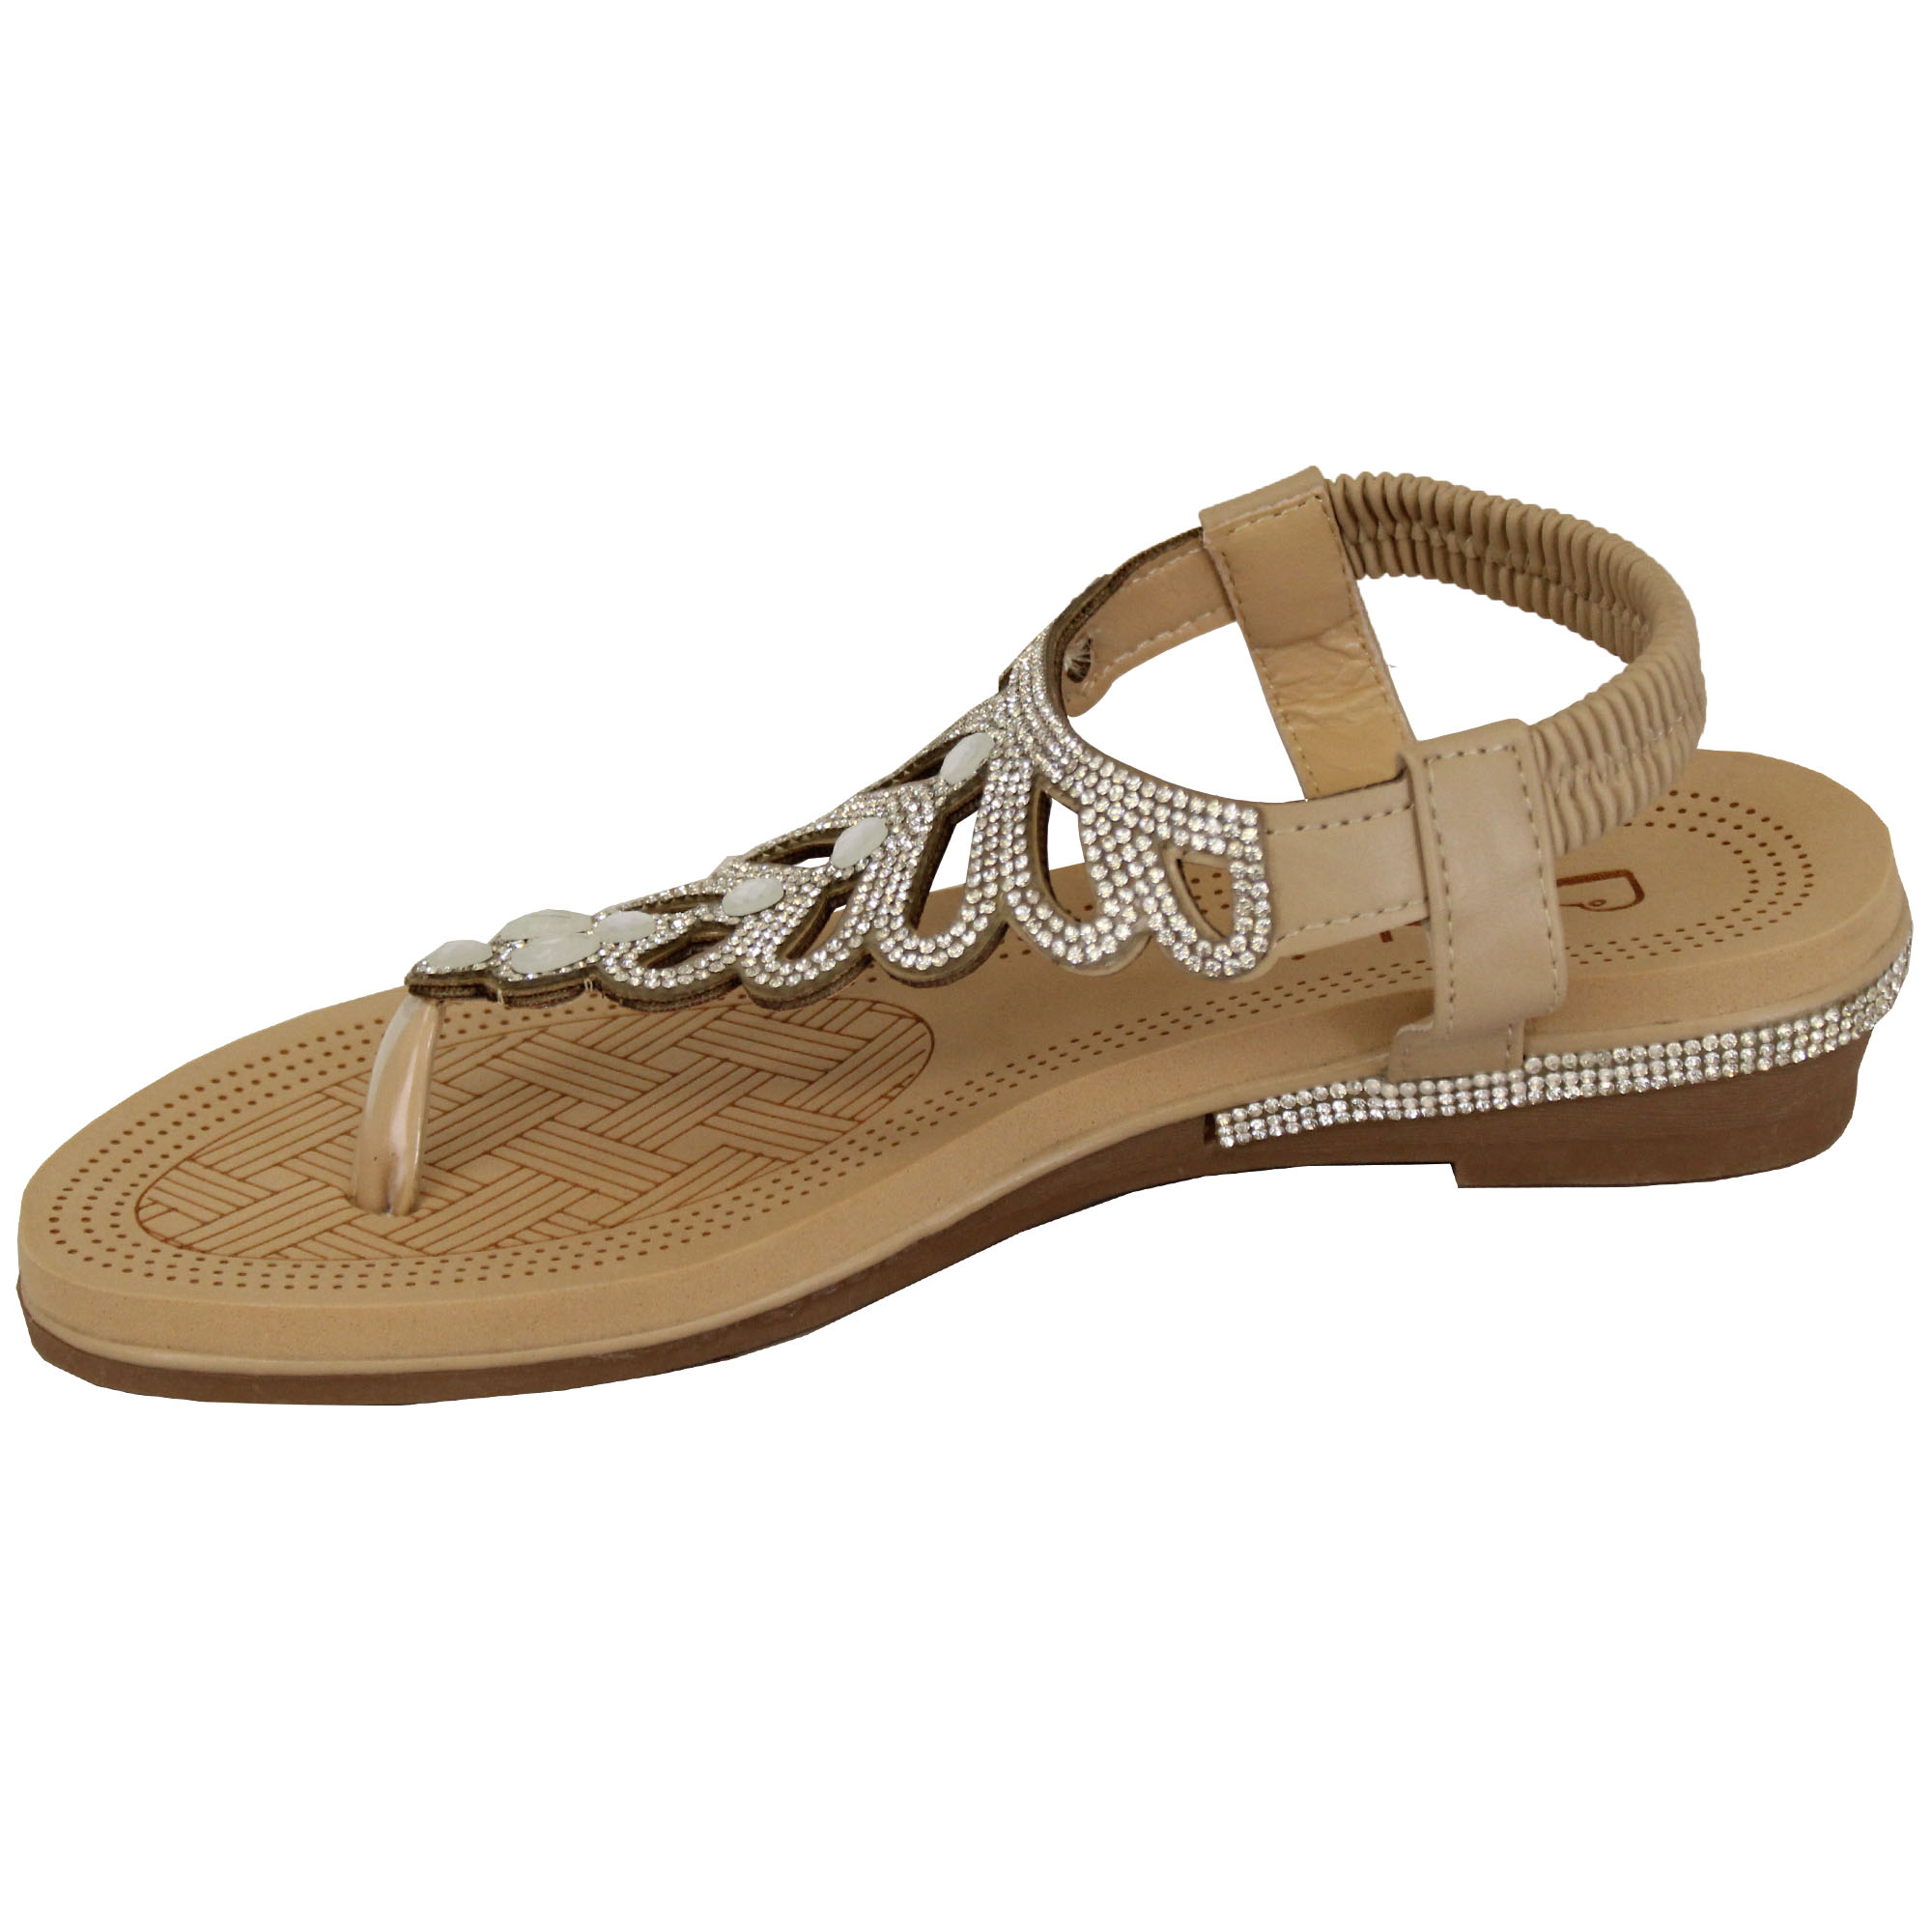 Ladies-Sandals-Kelsi-Womens-Diamante-Slip-On-Toe-Post-Shoes-Casual-Fashion-New thumbnail 3